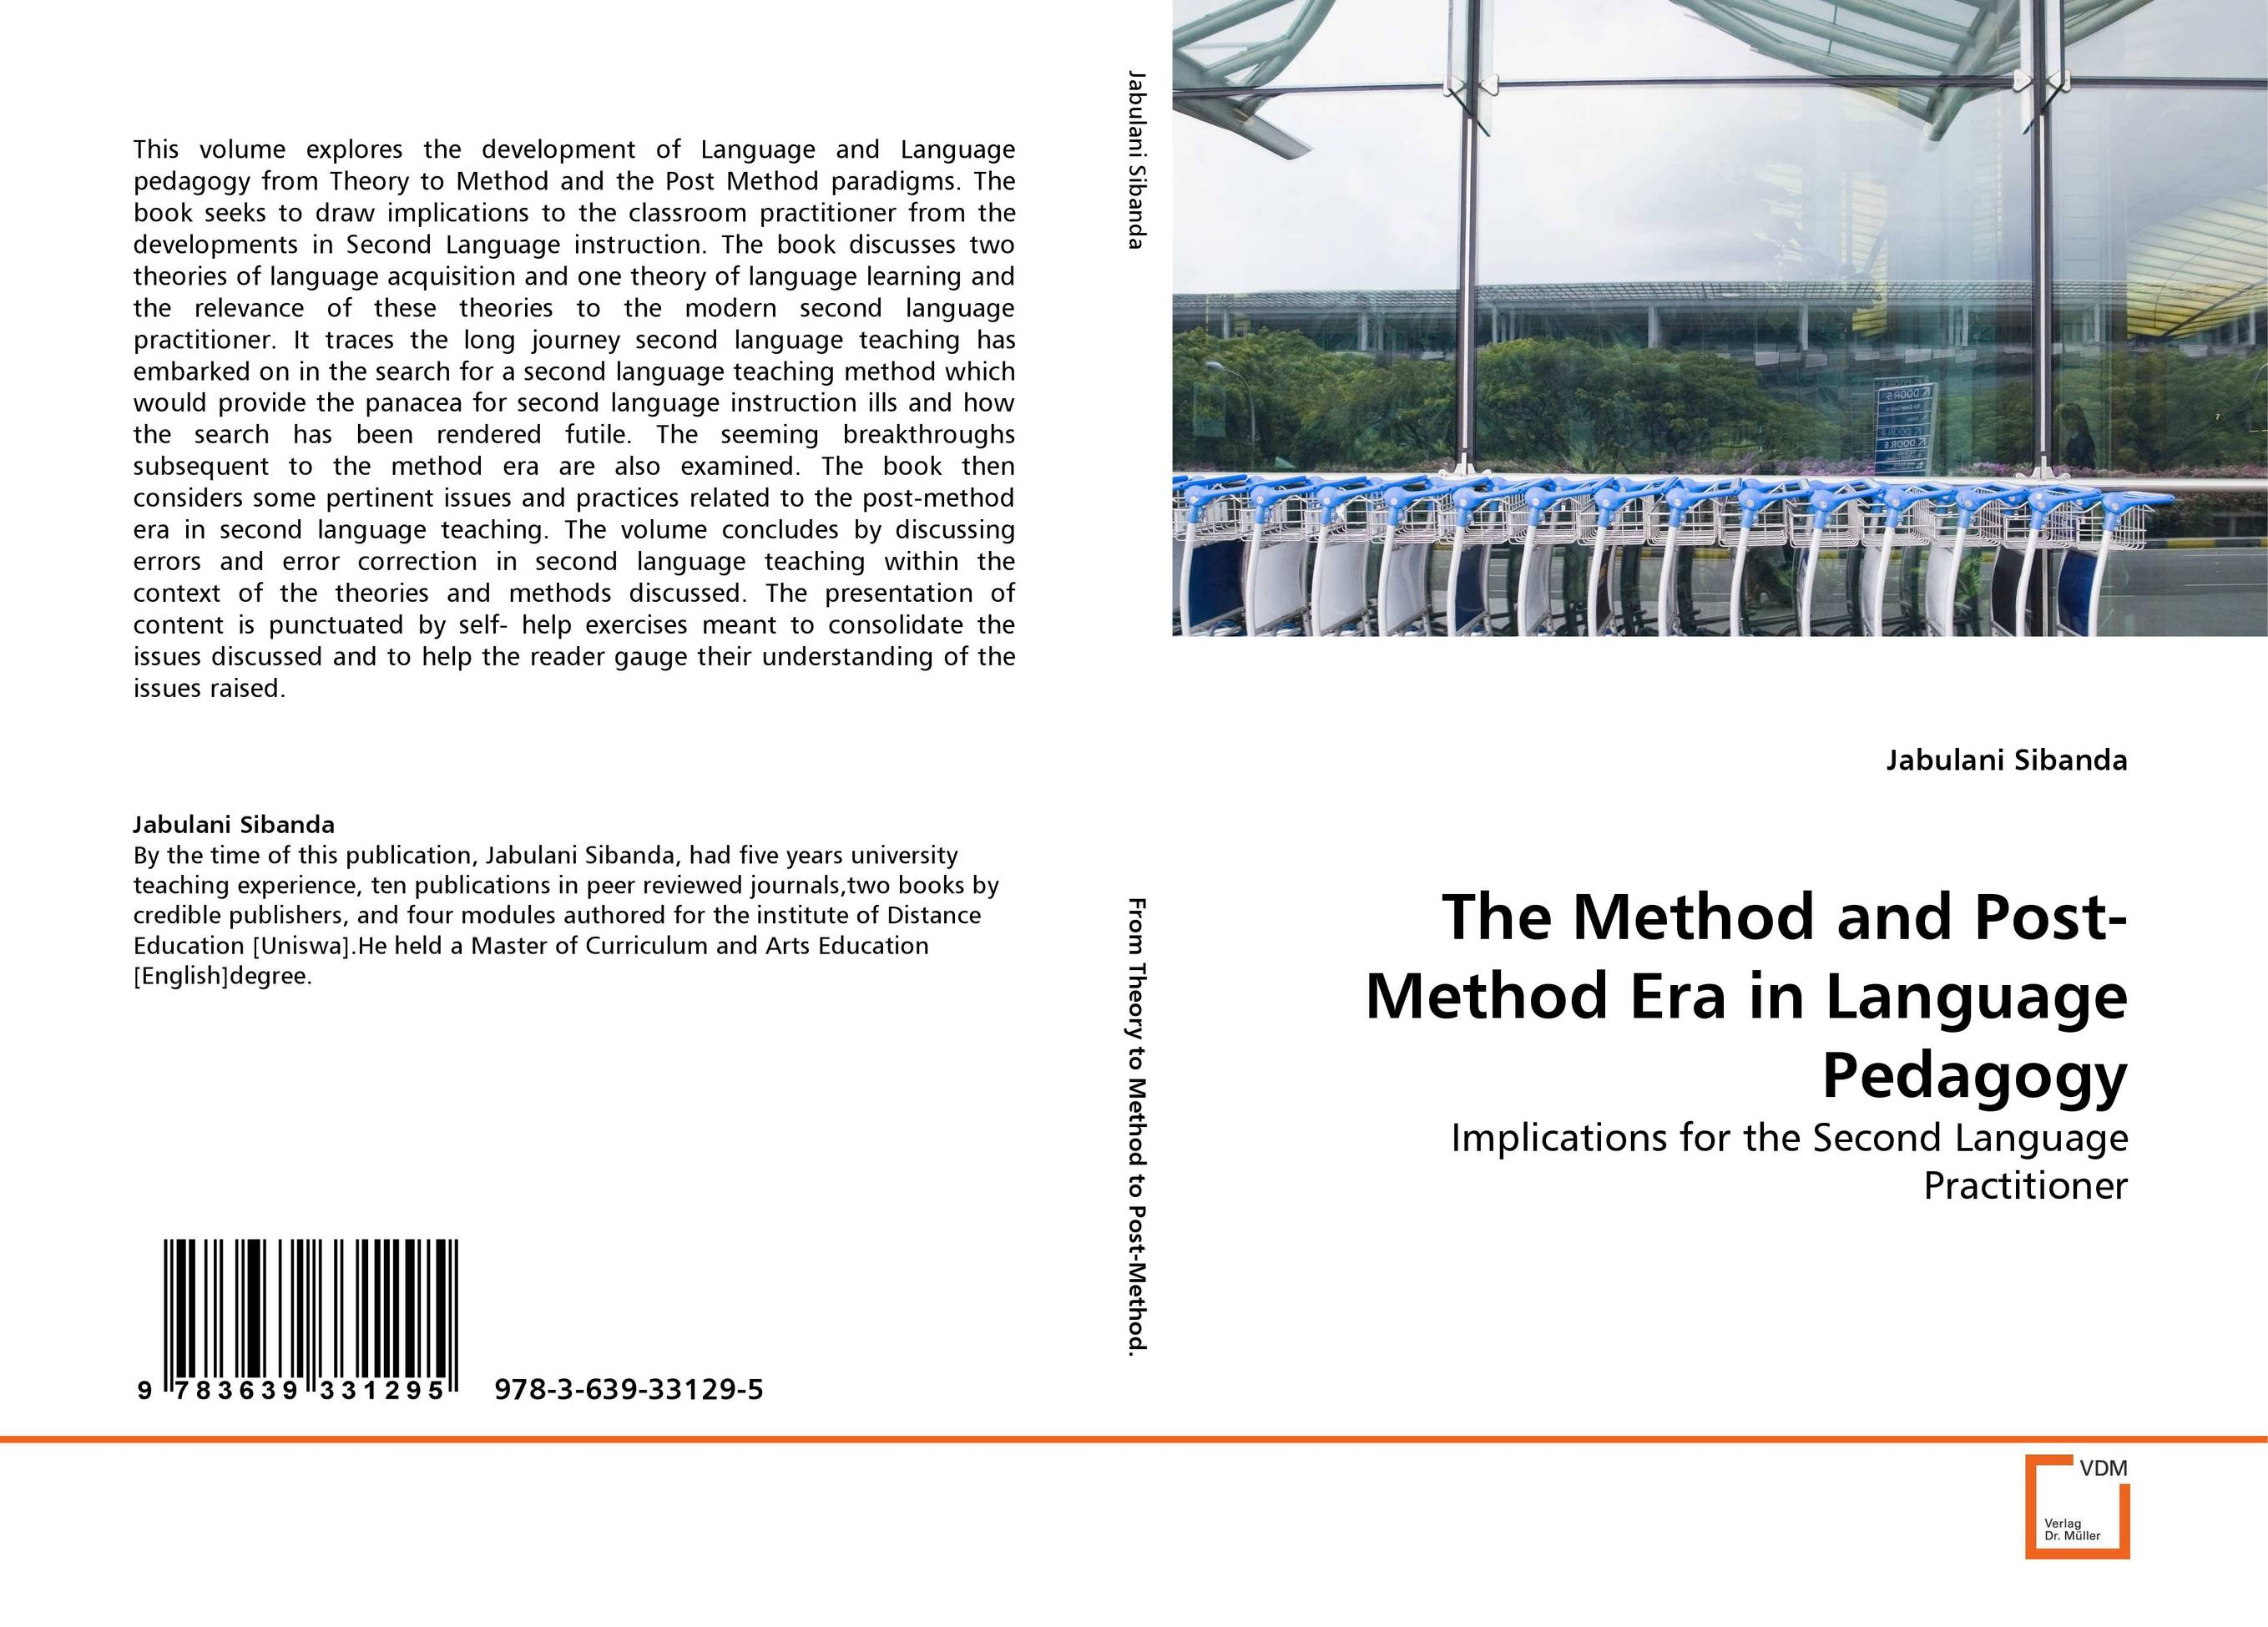 The Method and Post-Method Era in Language Pedagogy blog theory